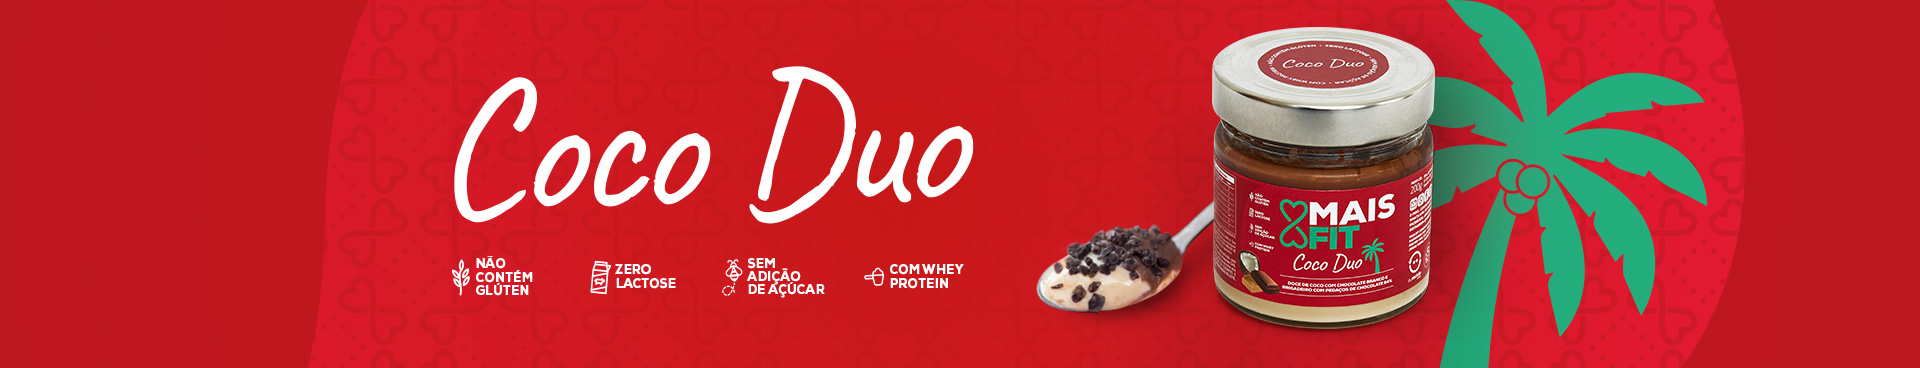 Coco Duo